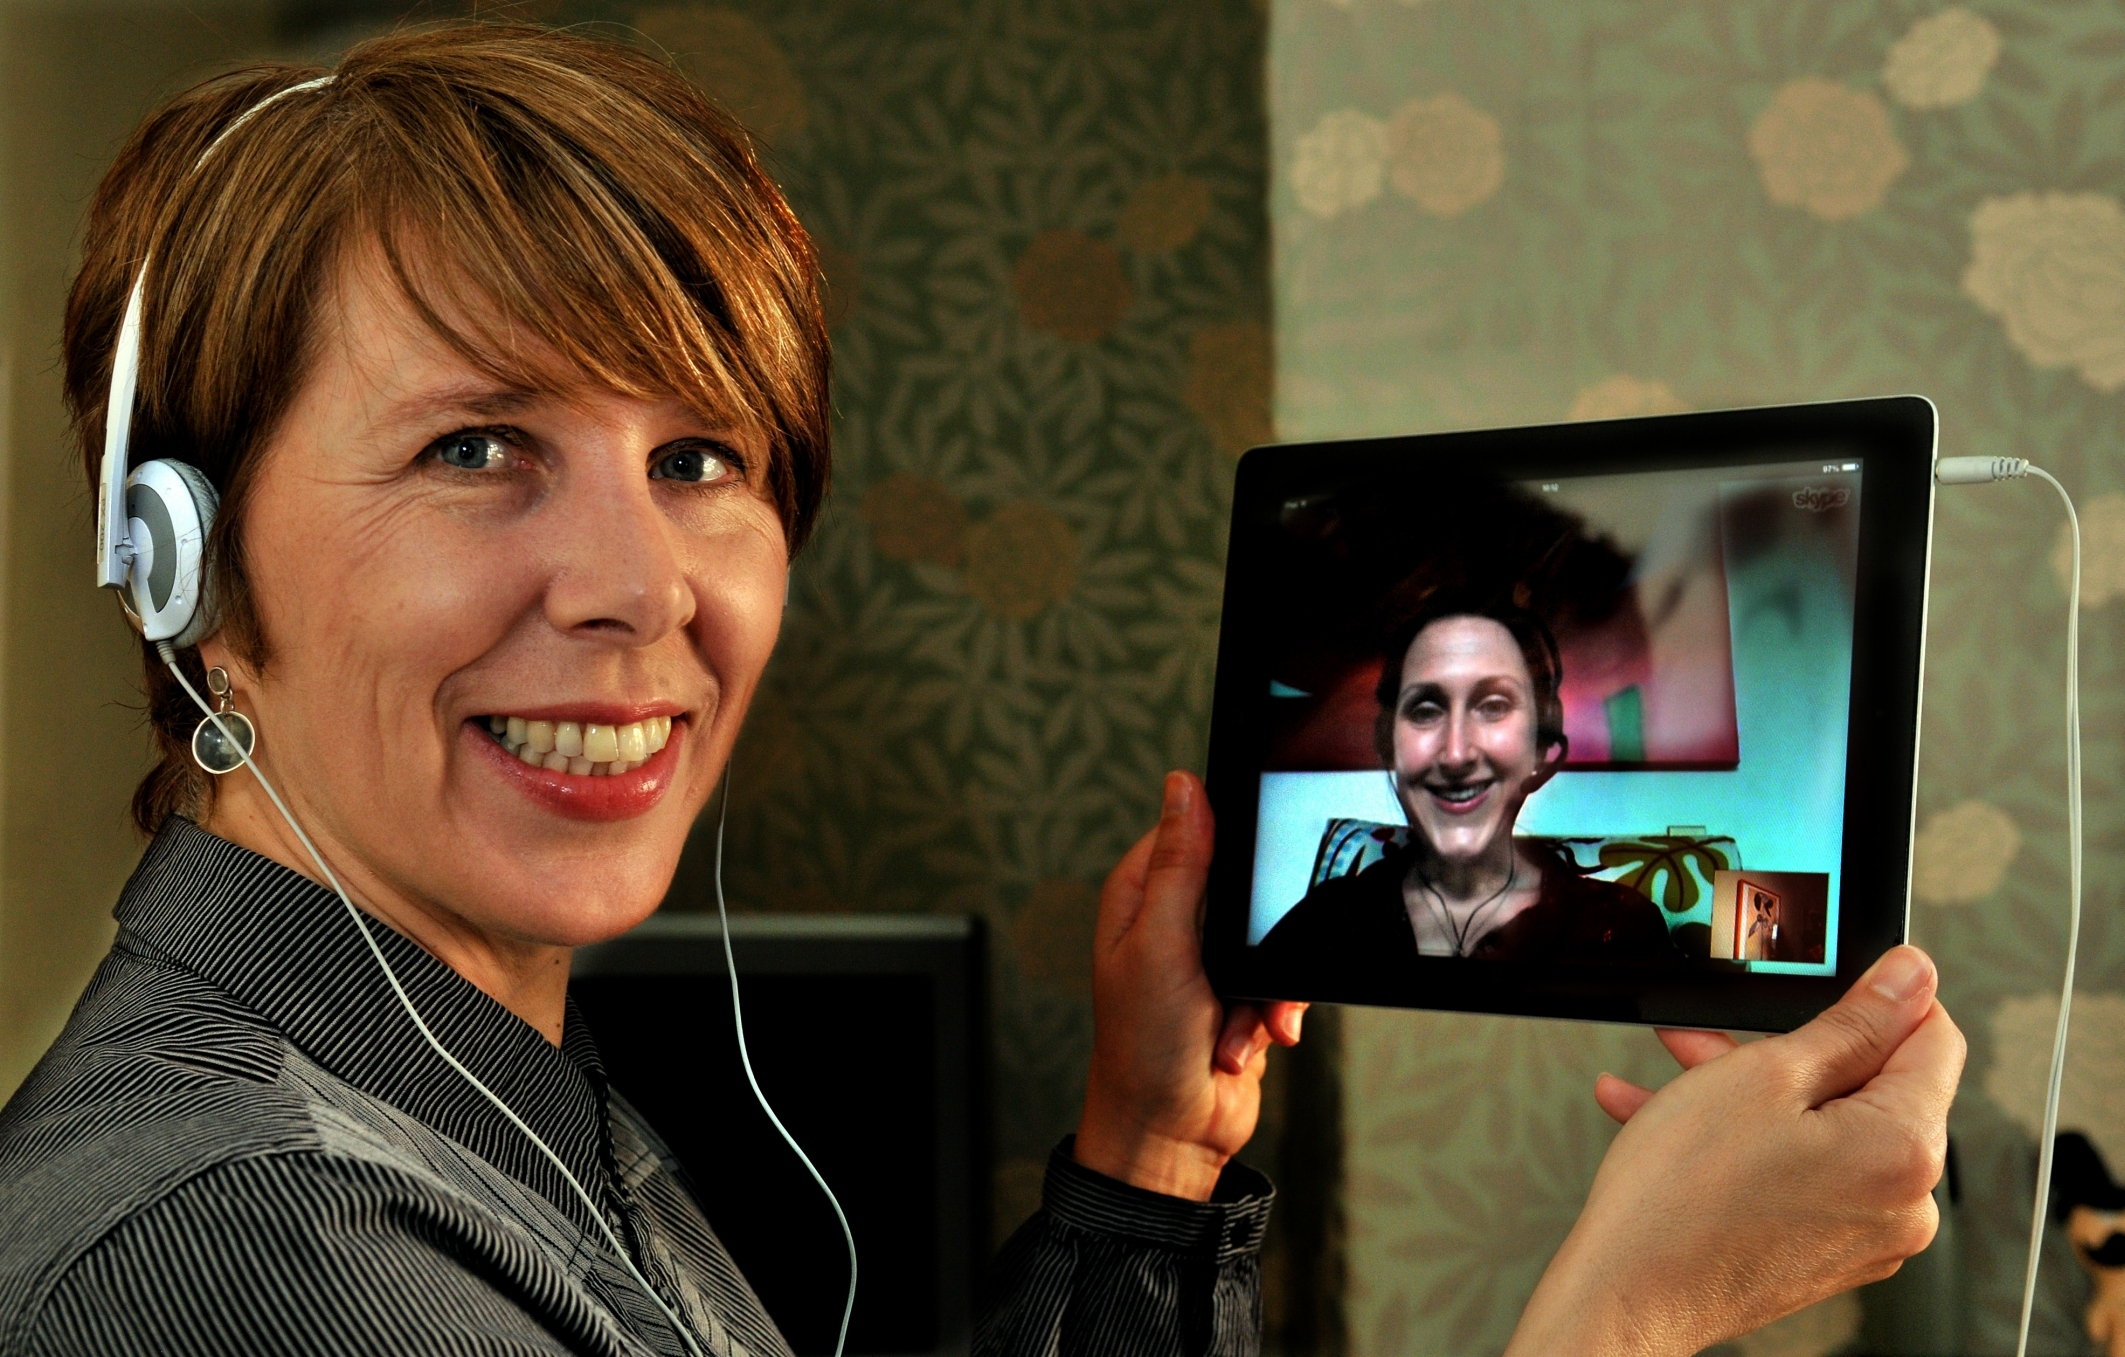 Journalist Maxine Gordon chats to York hypnotherapist Rachael Armstrong via Skype. Rachael offers a 'Skypenosis' service, where she conducts hypnotherapy with clients over the internet